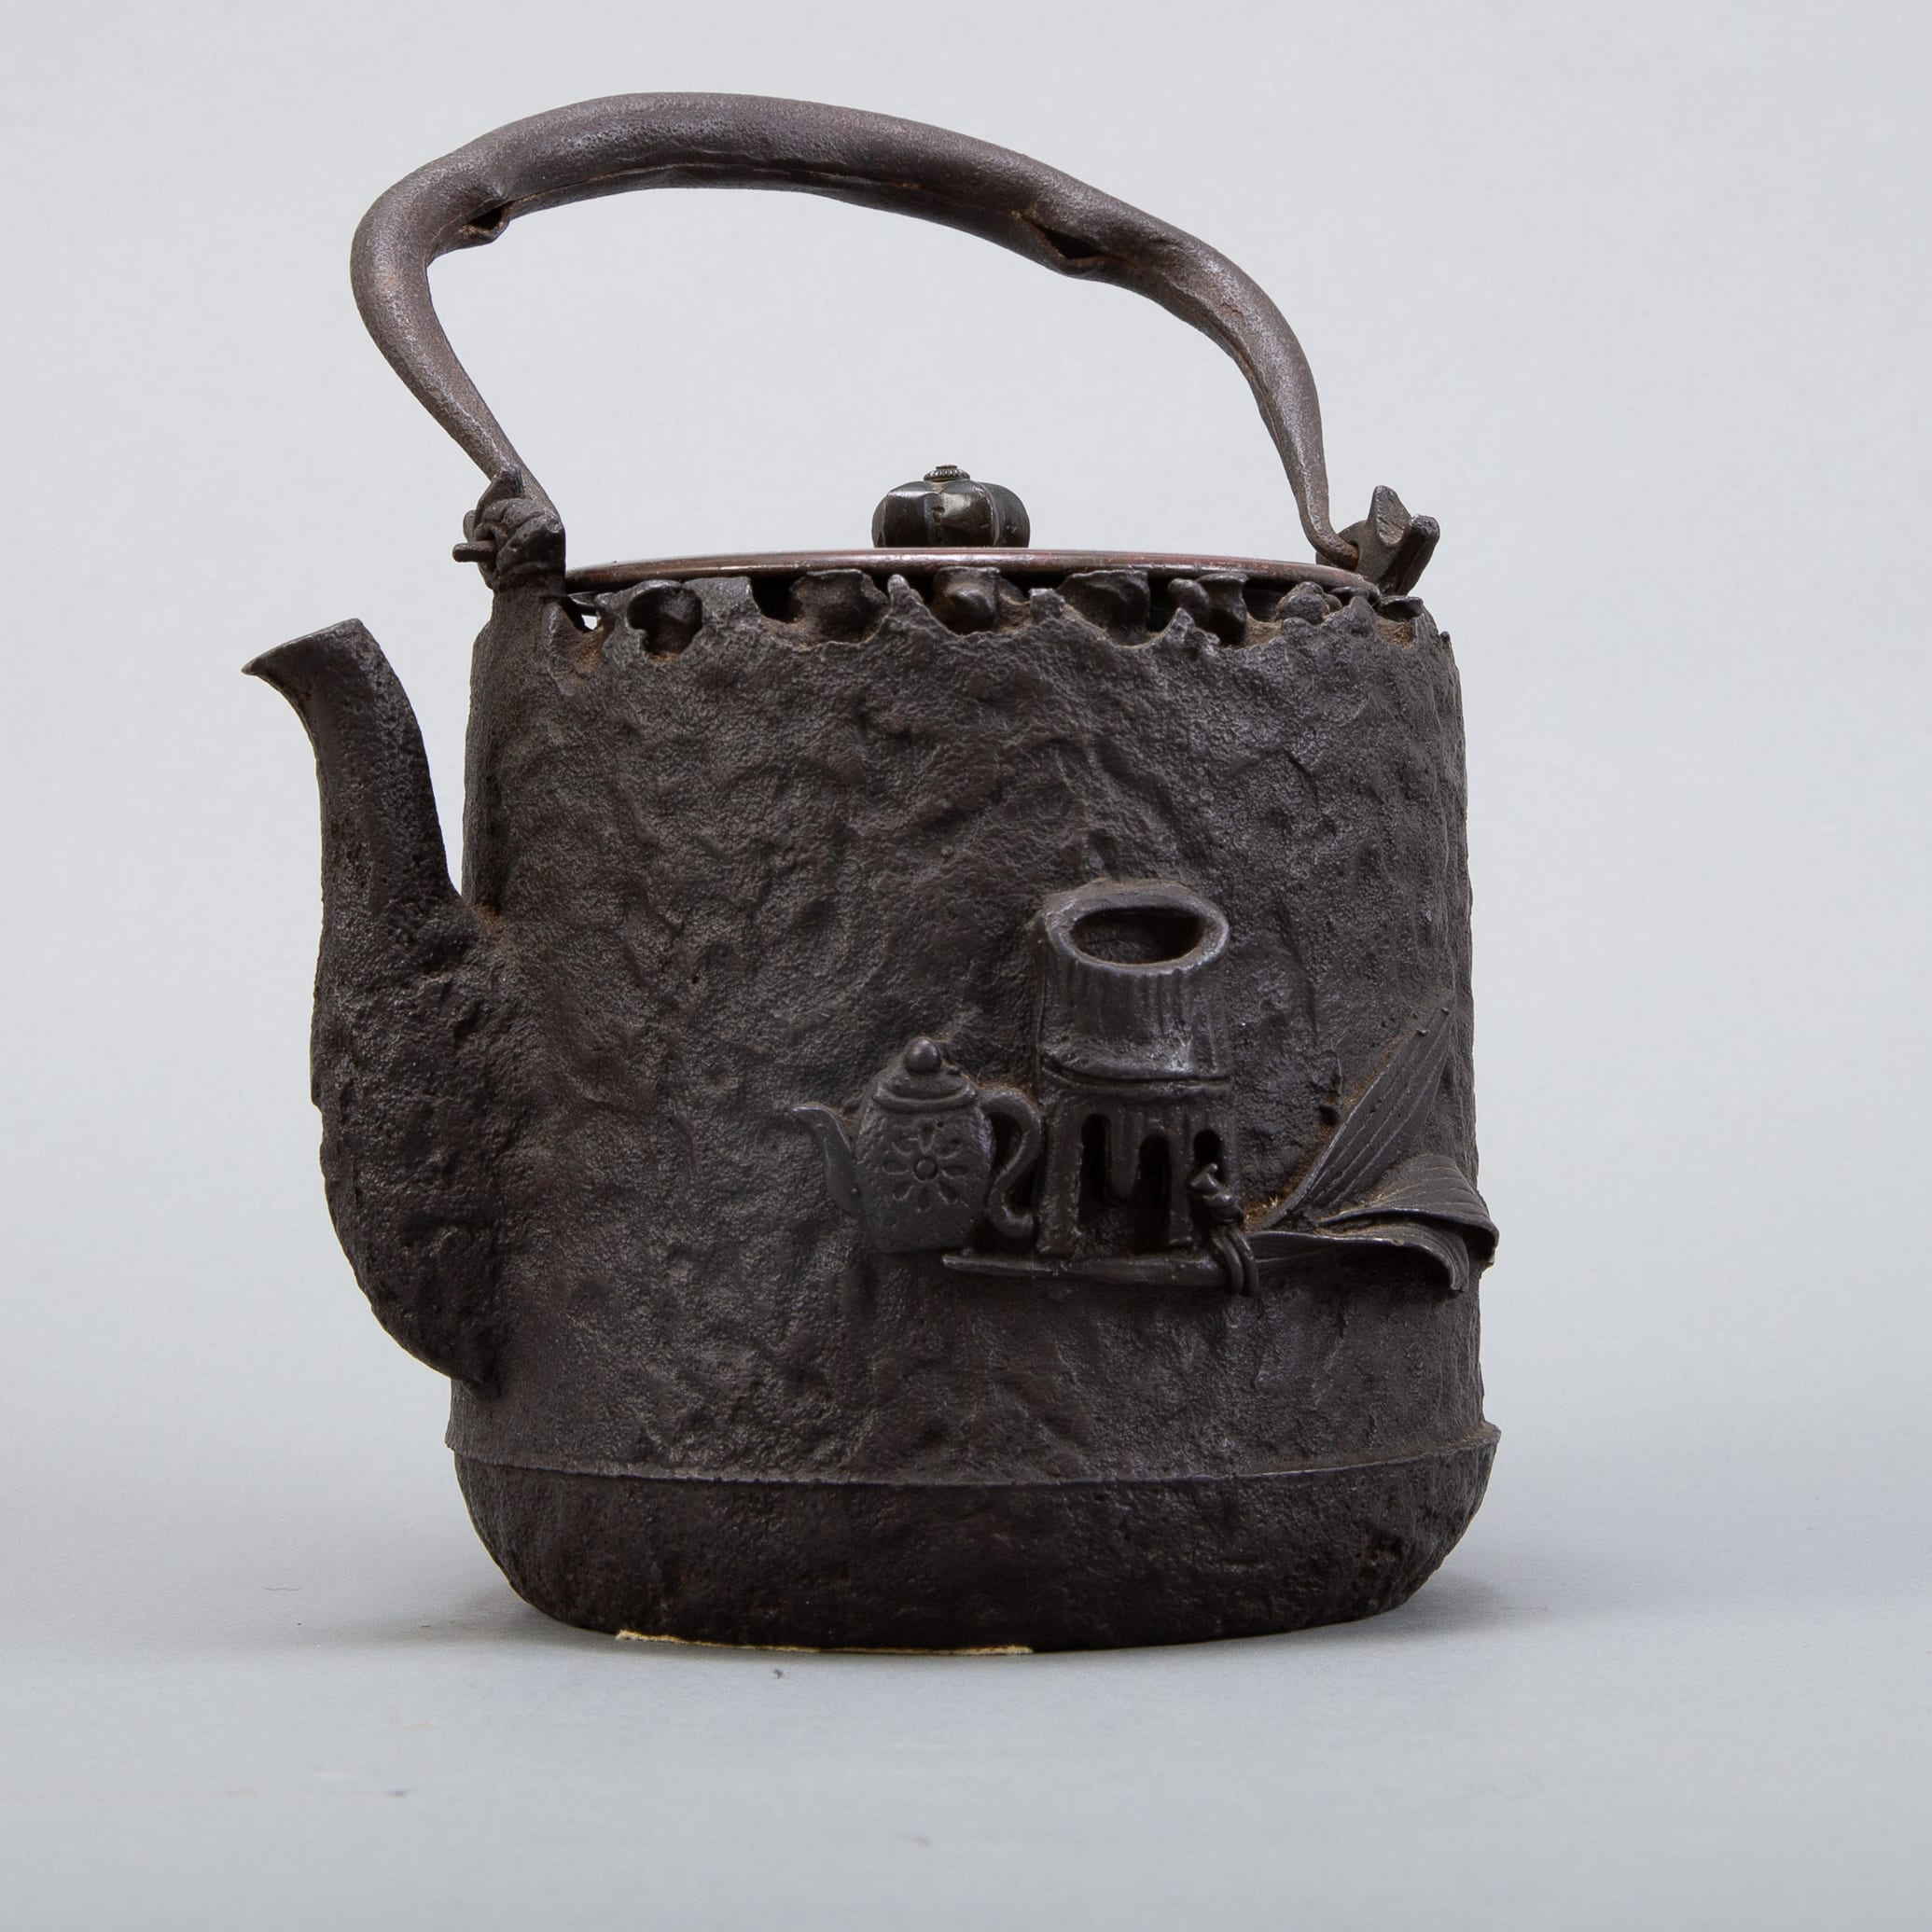 Lot 006: Meiji Japanese Iron Kettle Attributed to Ryubundo